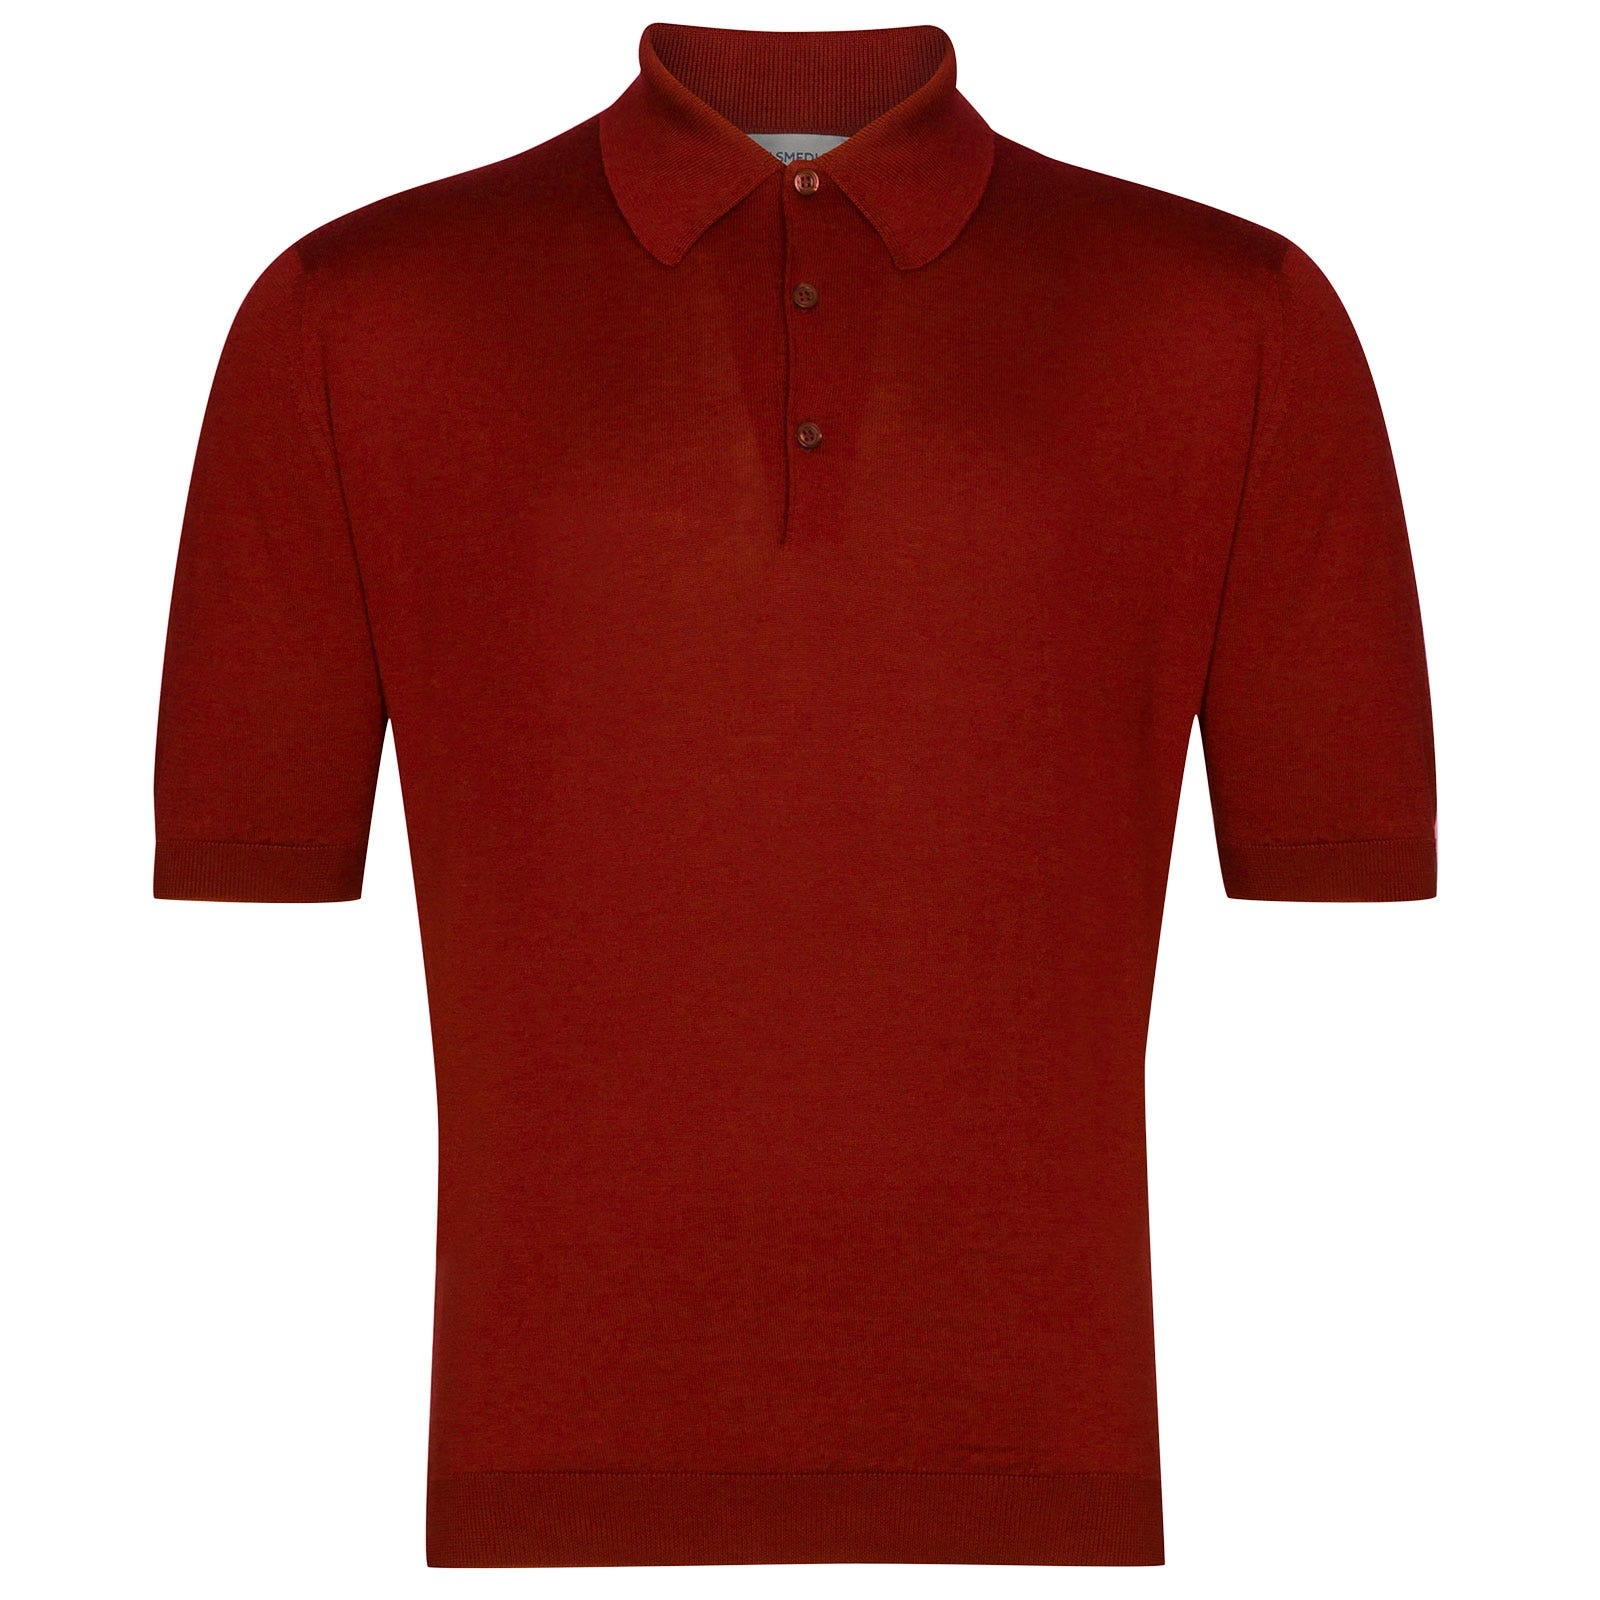 John Smedley Isis Sea Island Cotton Shirt in Thermal Red-L